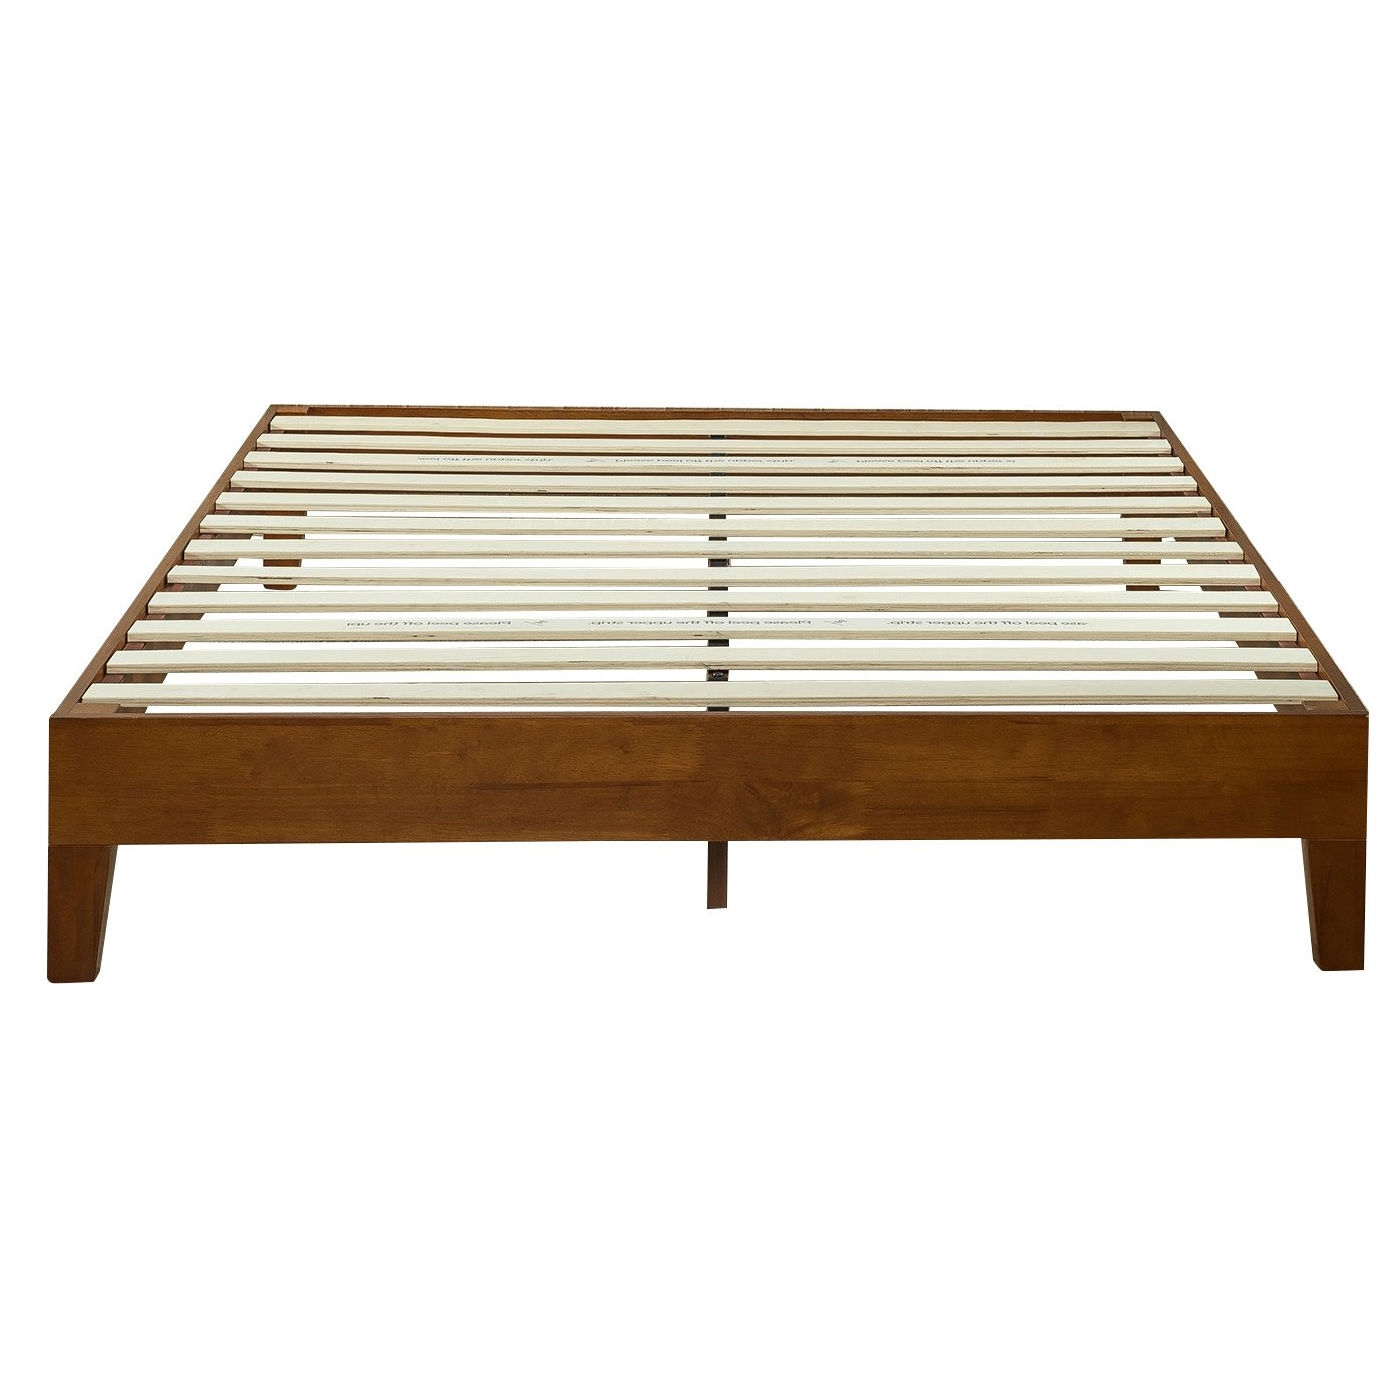 Picture of: Full Size Low Profile Platform Bed Frame In Cherry Wood Finish Fastfurnishings Com